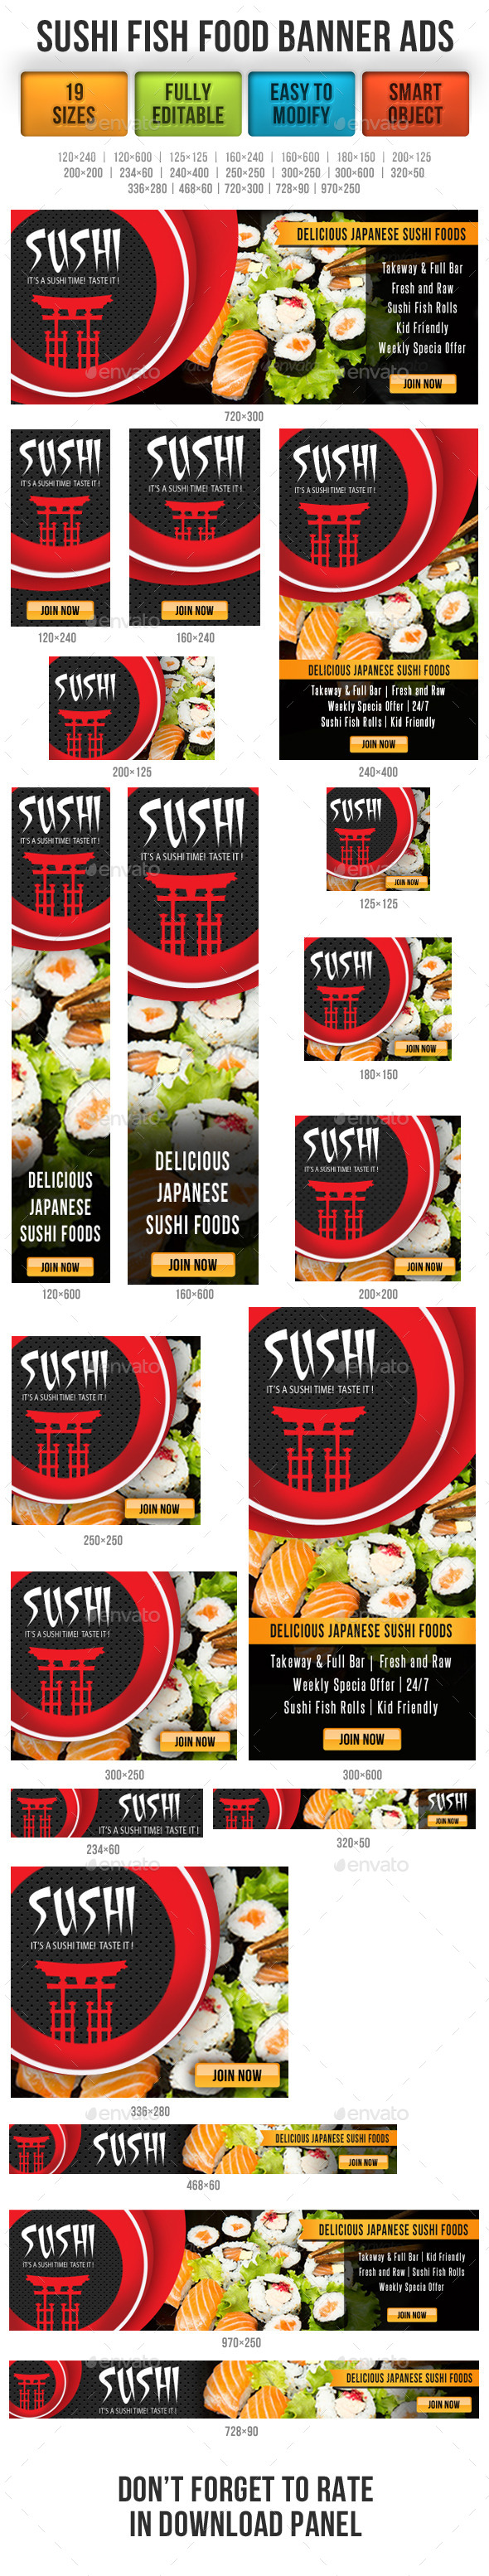 Sushi Fish Food Banner Ads - Banners & Ads Web Elements